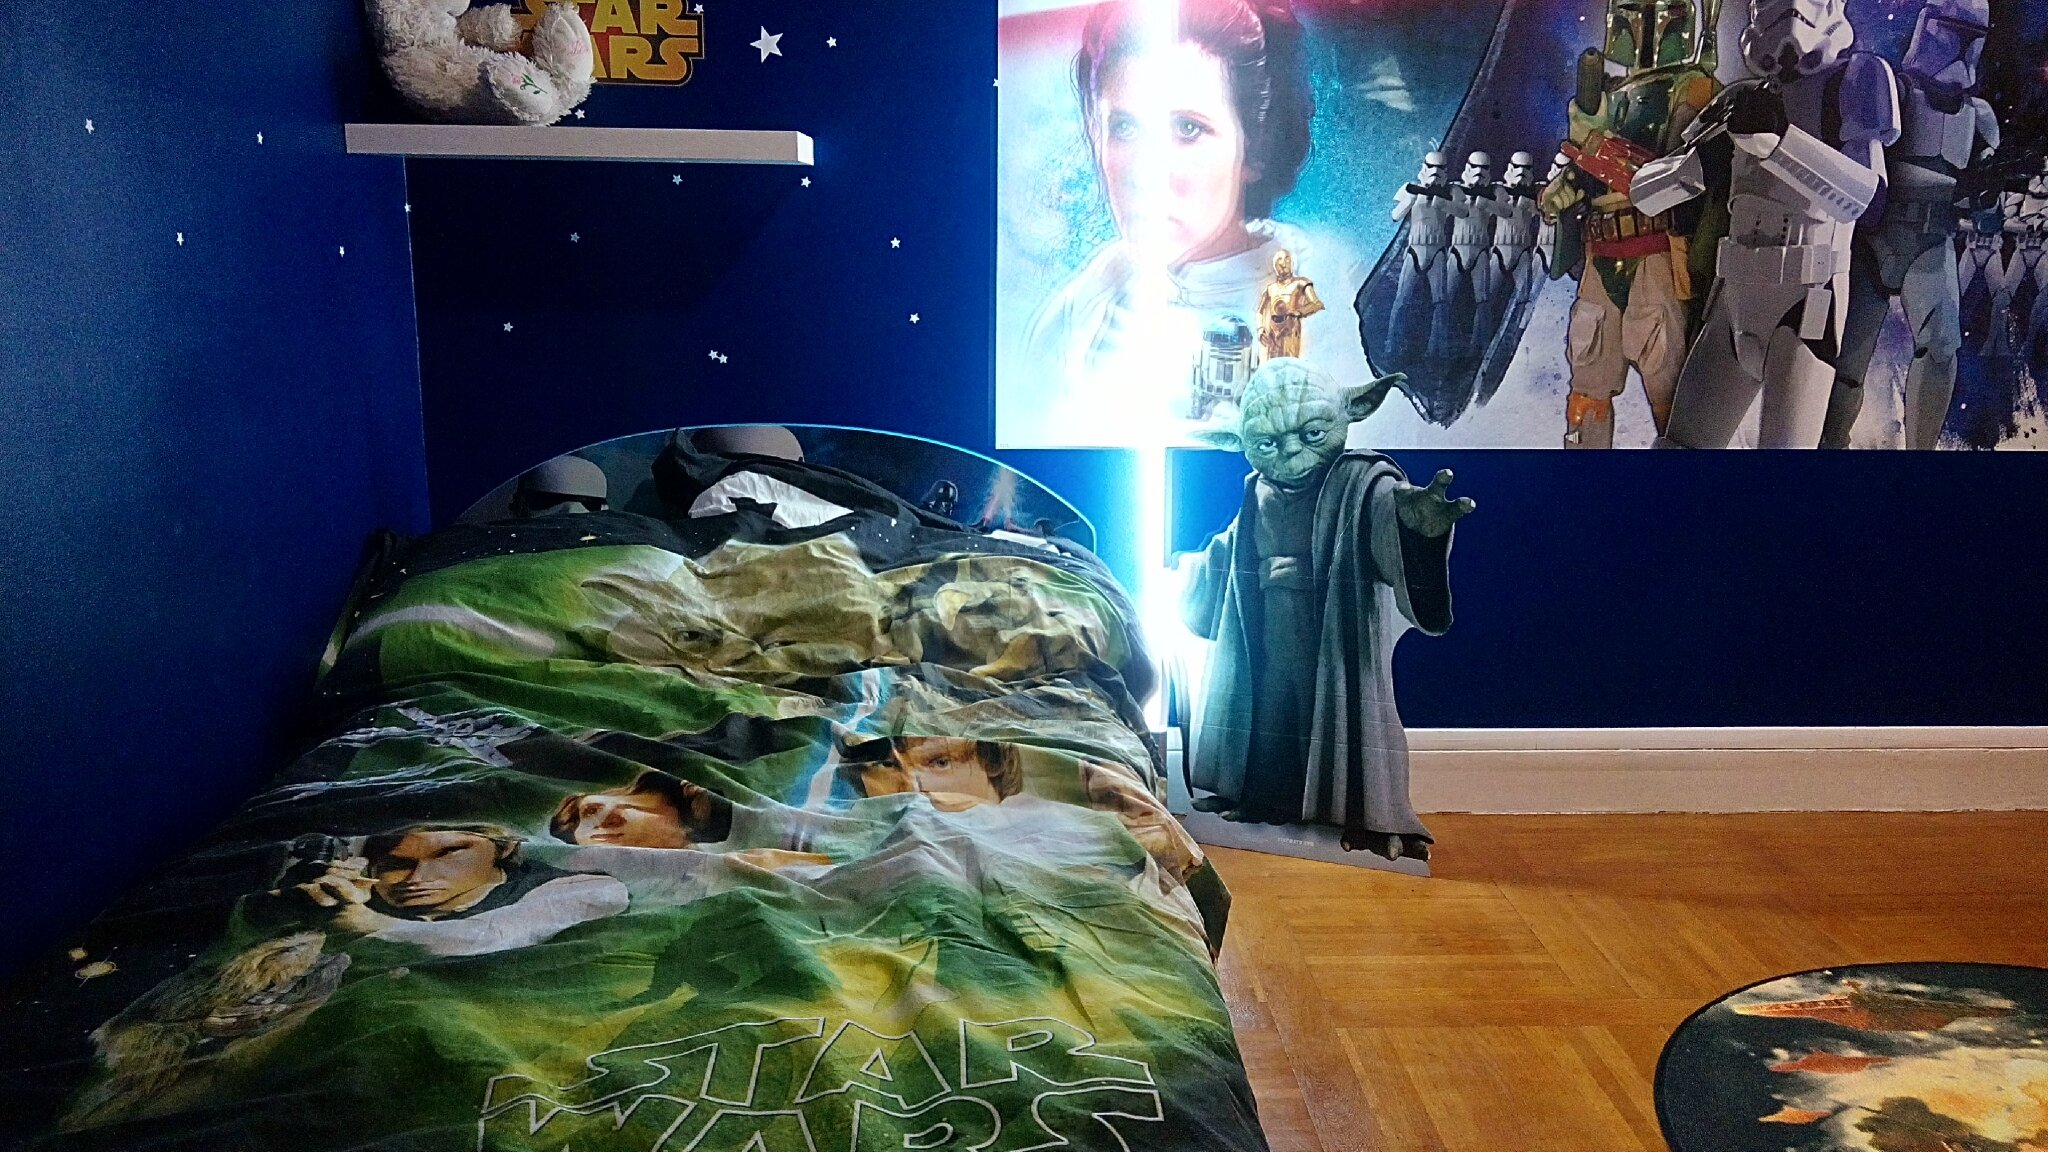 chambre star wars d coration chambre d 39 enfant et jouets en bois. Black Bedroom Furniture Sets. Home Design Ideas